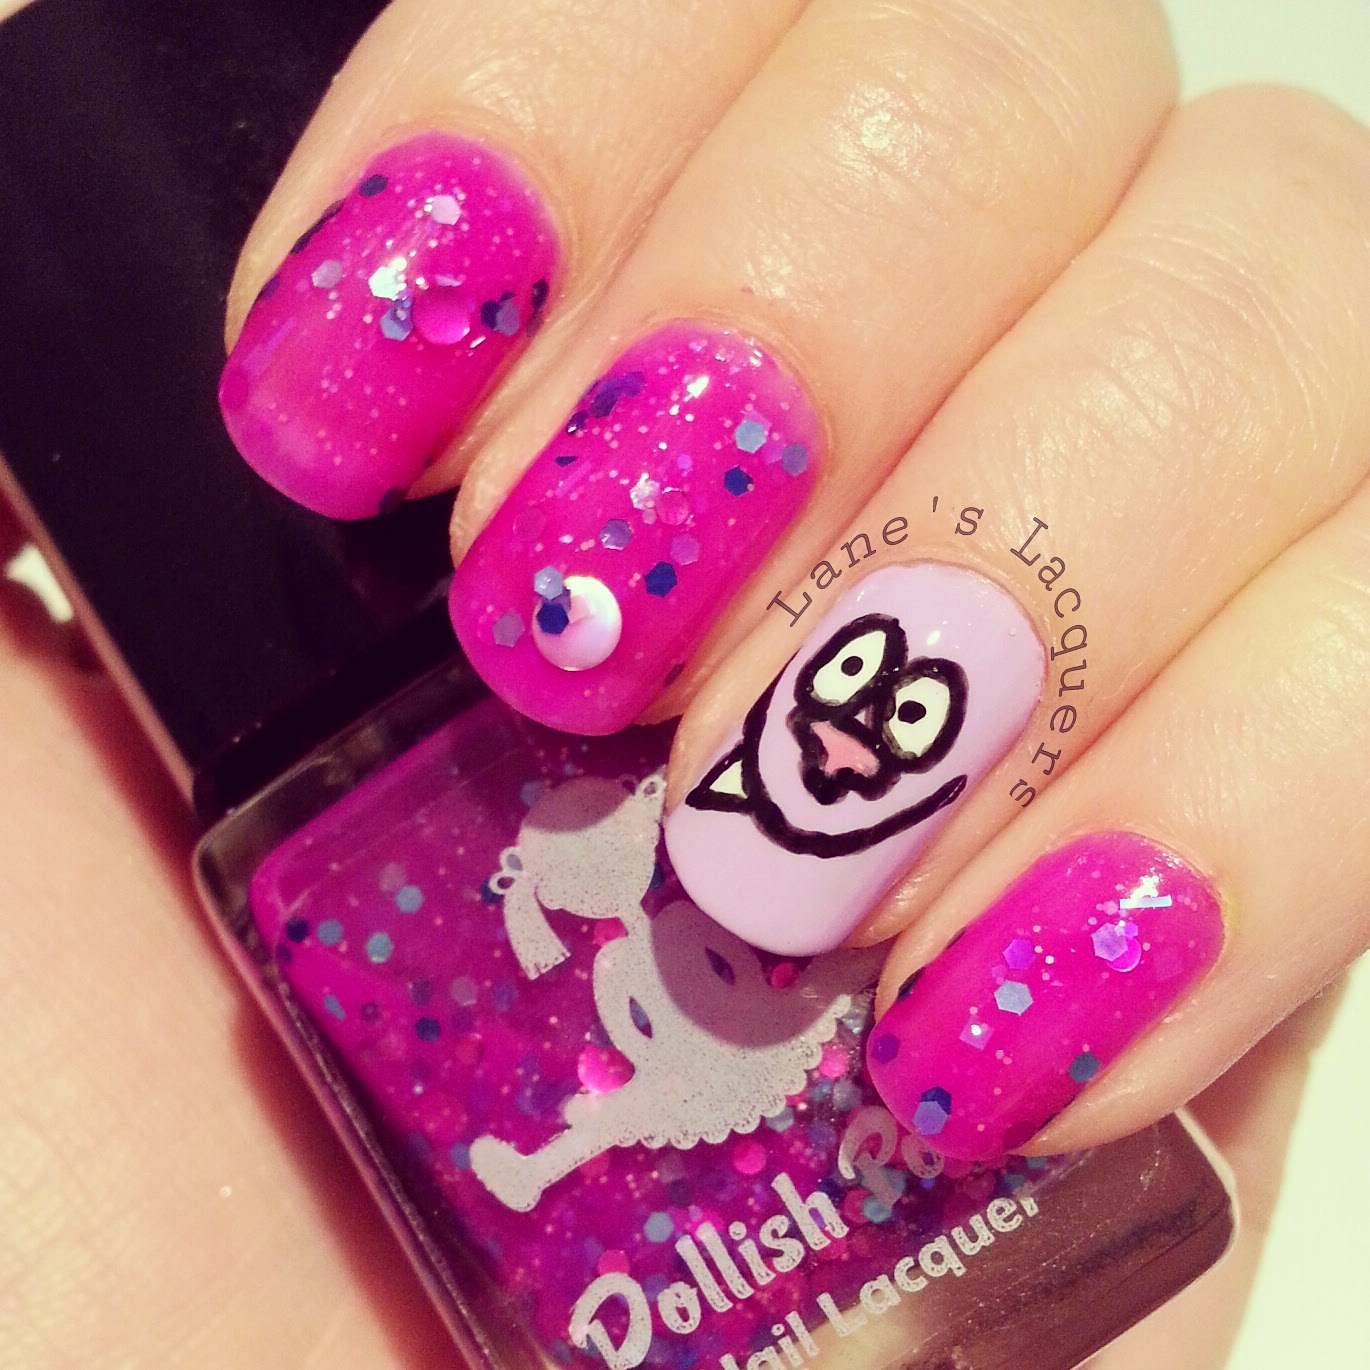 dollish-polish-purple-nurples-chowder-nail-art (2)